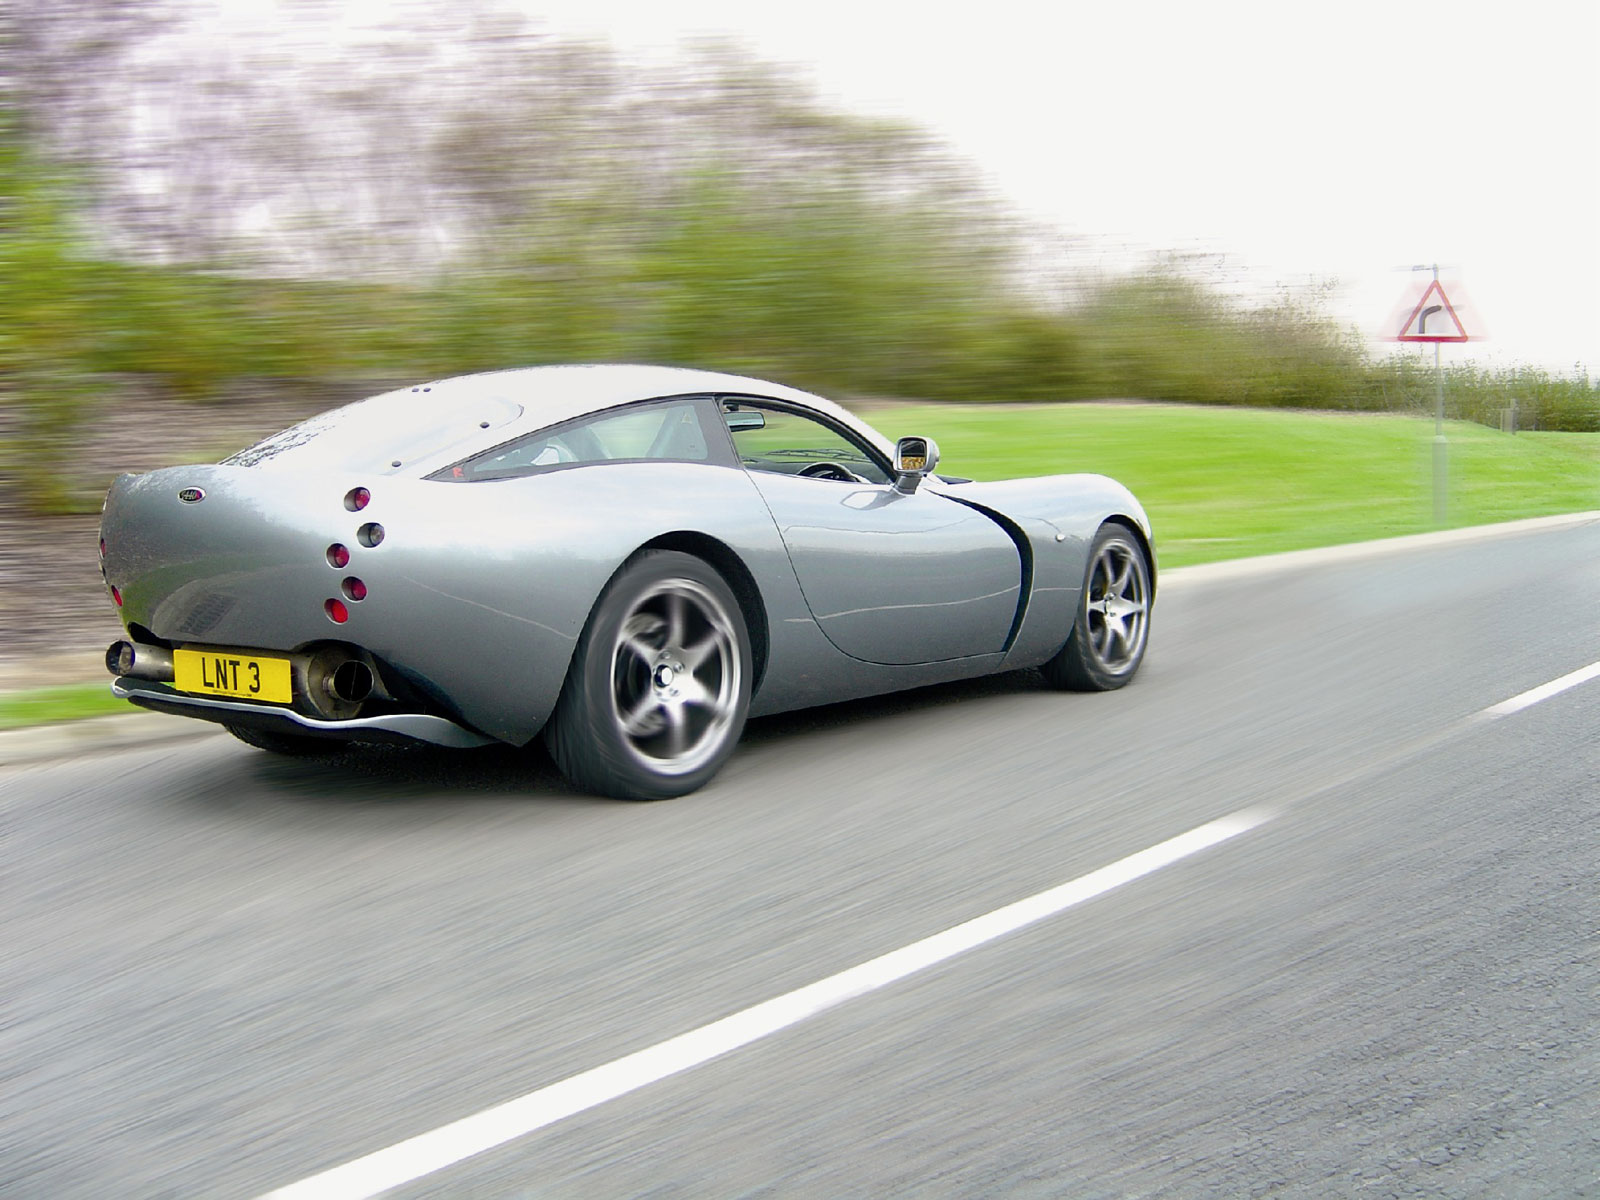 Tvr t440r photo - 4